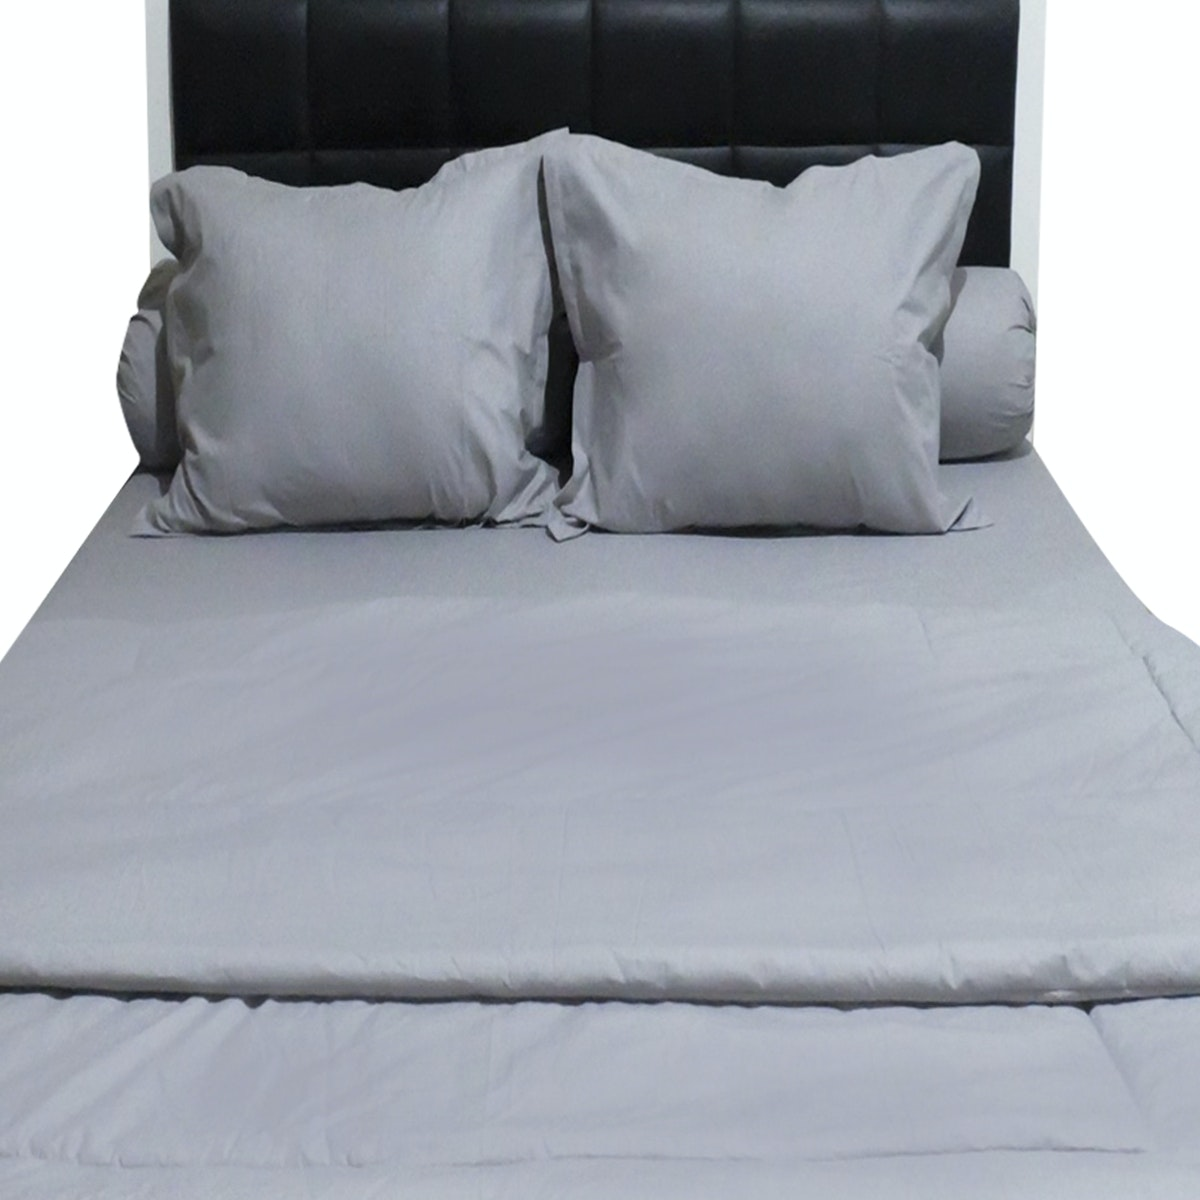 Sleep Buddy Set Sprei dan Bed Cover Plain Grey CVC 200x200x30